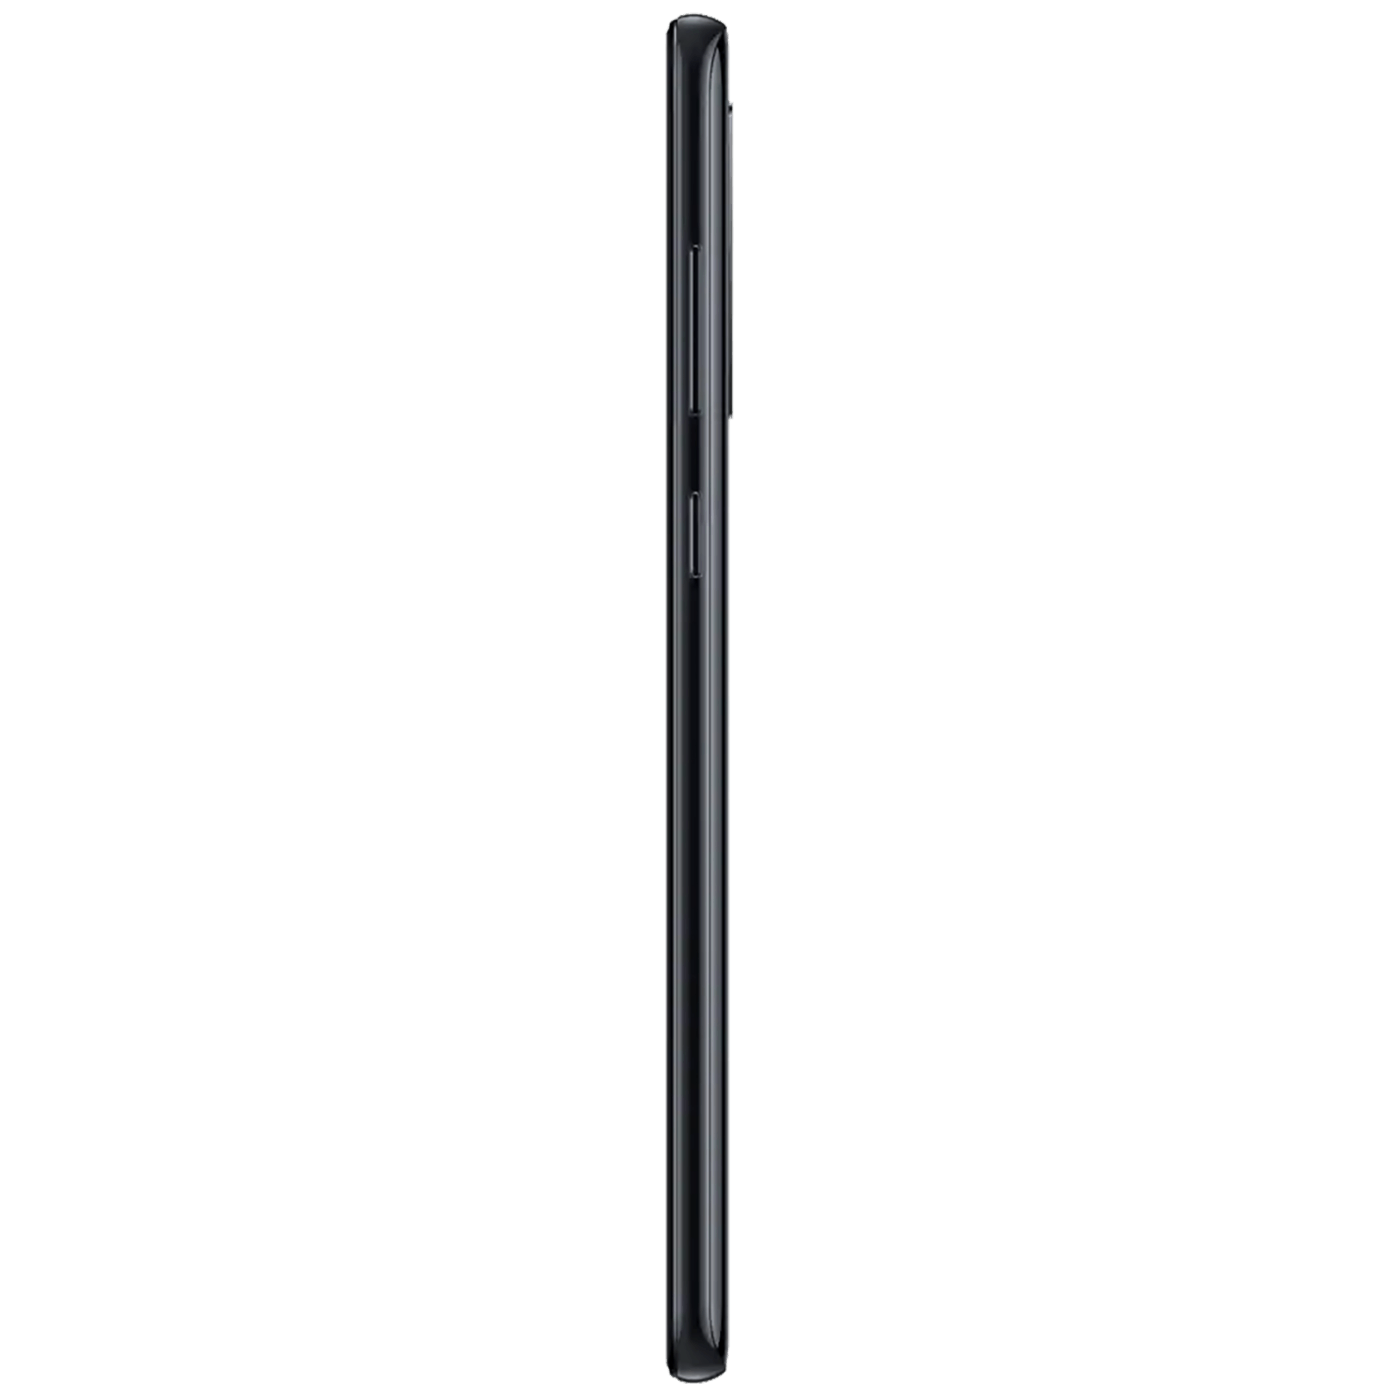 Galaxy A9 Cavijar Black